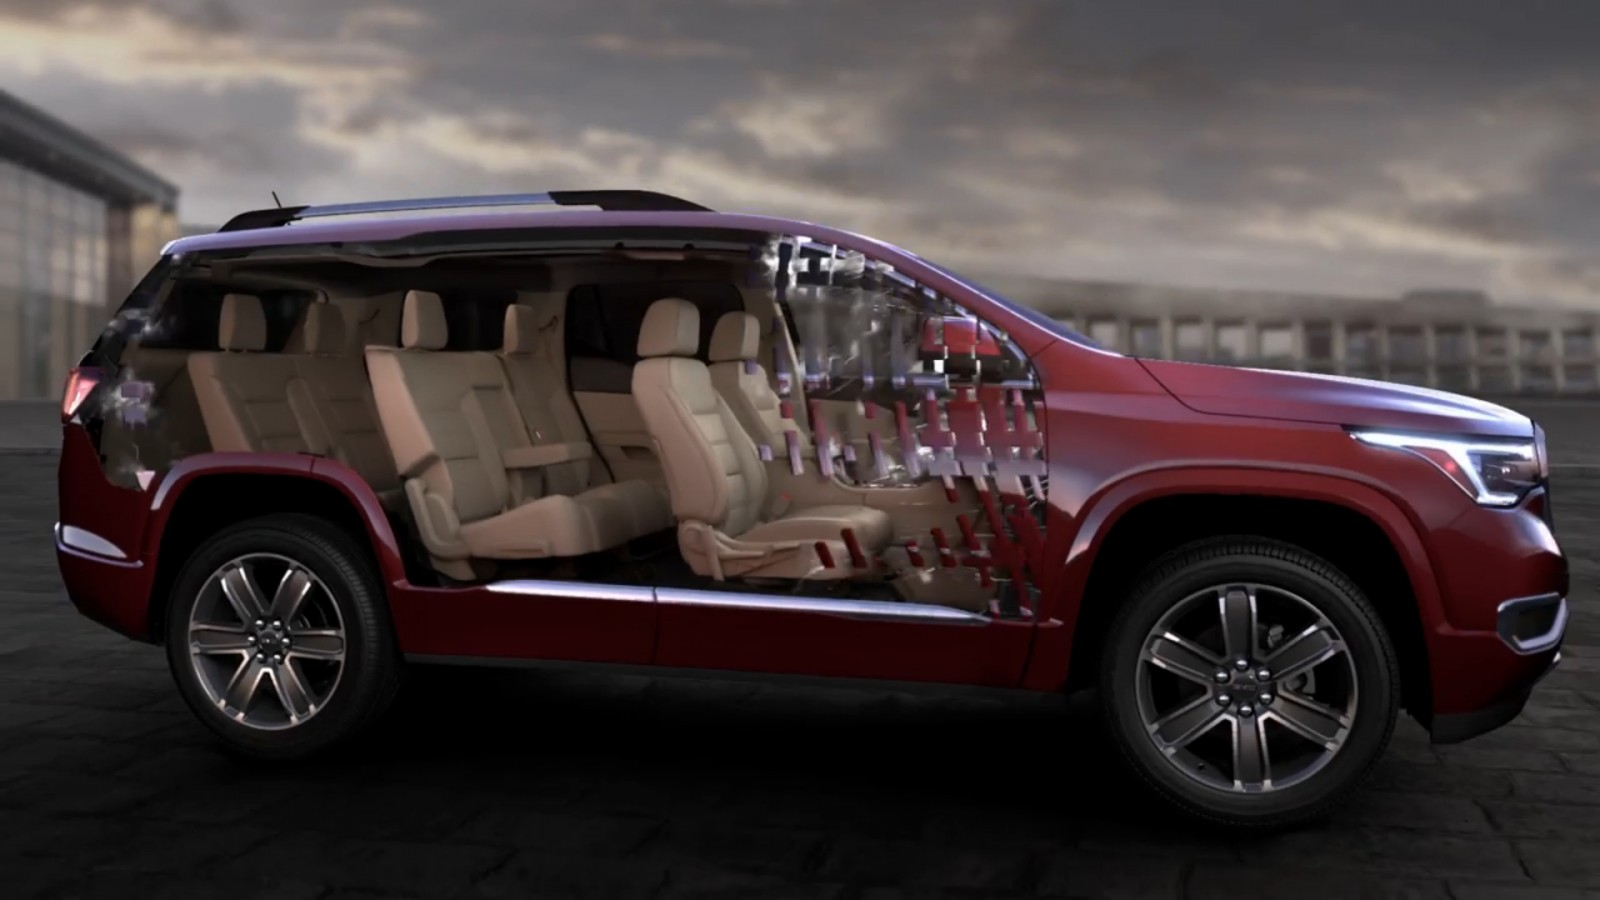 2017 GMC ACADIA Shows Radical Redesign: 700Lb Weight Loss ...